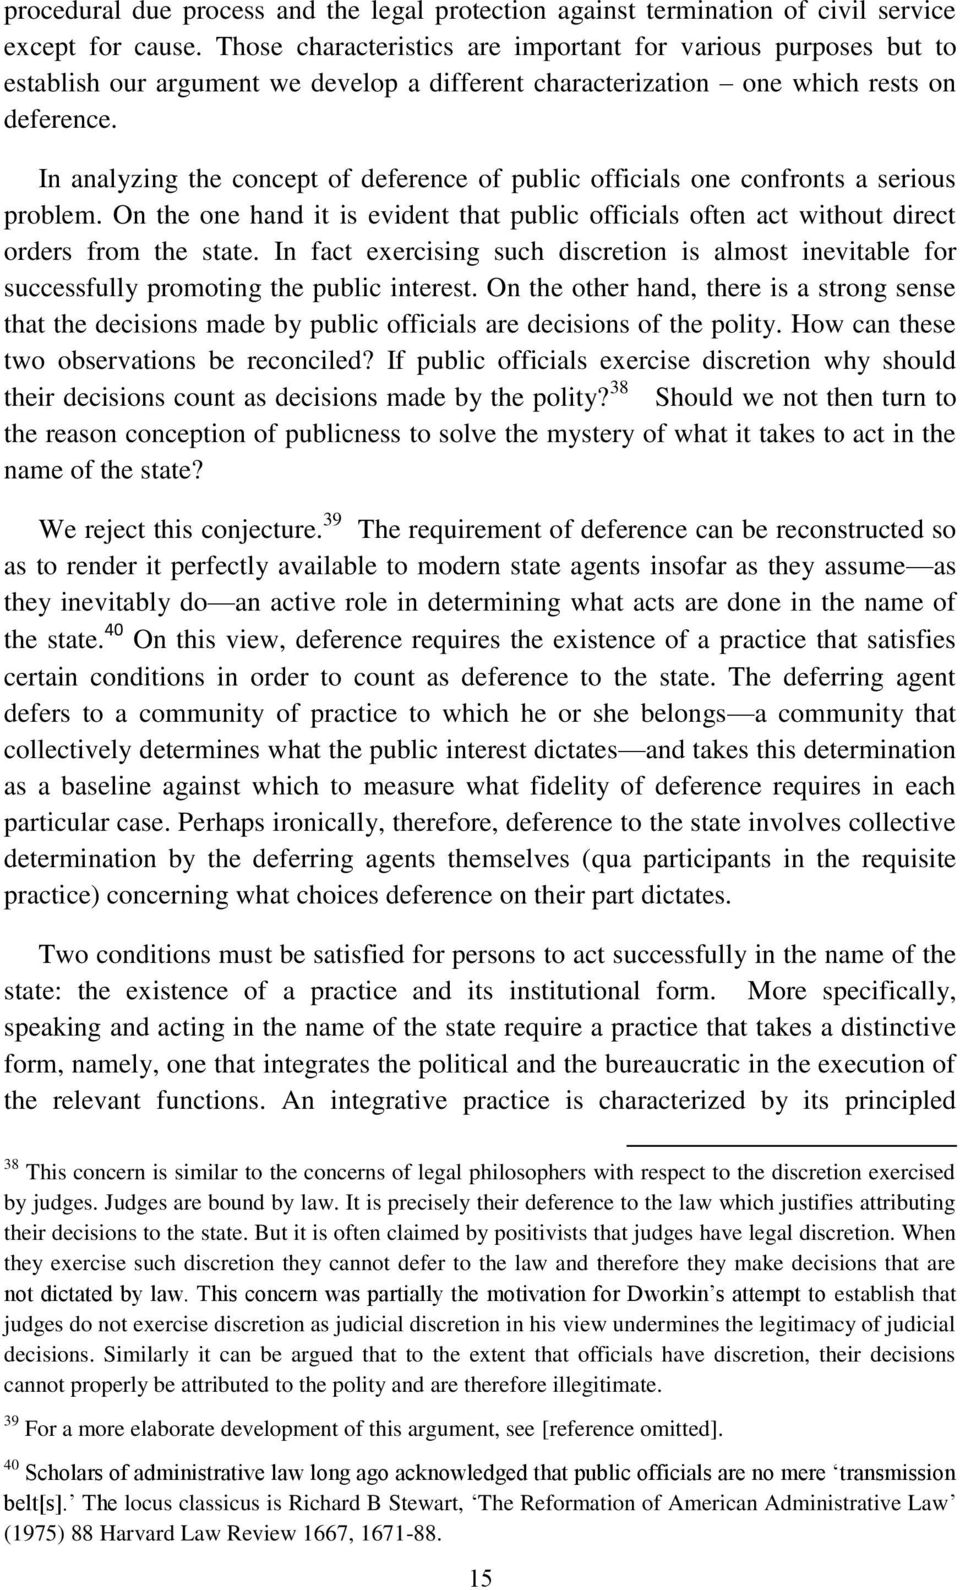 In analyzing the concept of deference of public officials one confronts a serious problem. On the one hand it is evident that public officials often act without direct orders from the state.